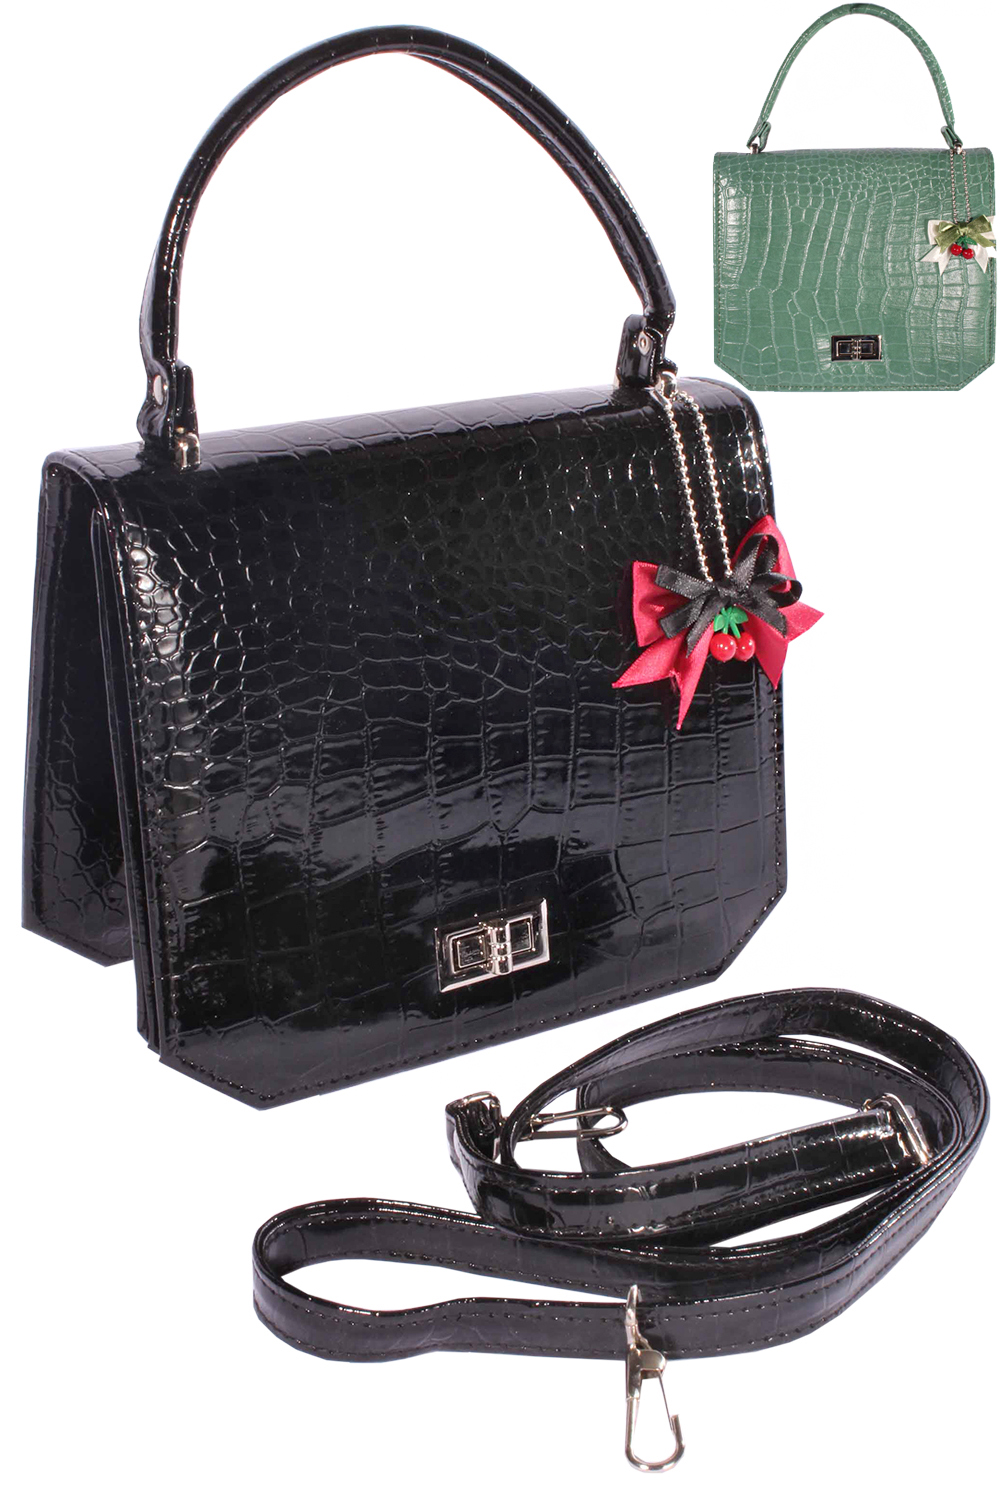 Krokodil Optik retro rockabilly BOW Cherry Croco Handtasche